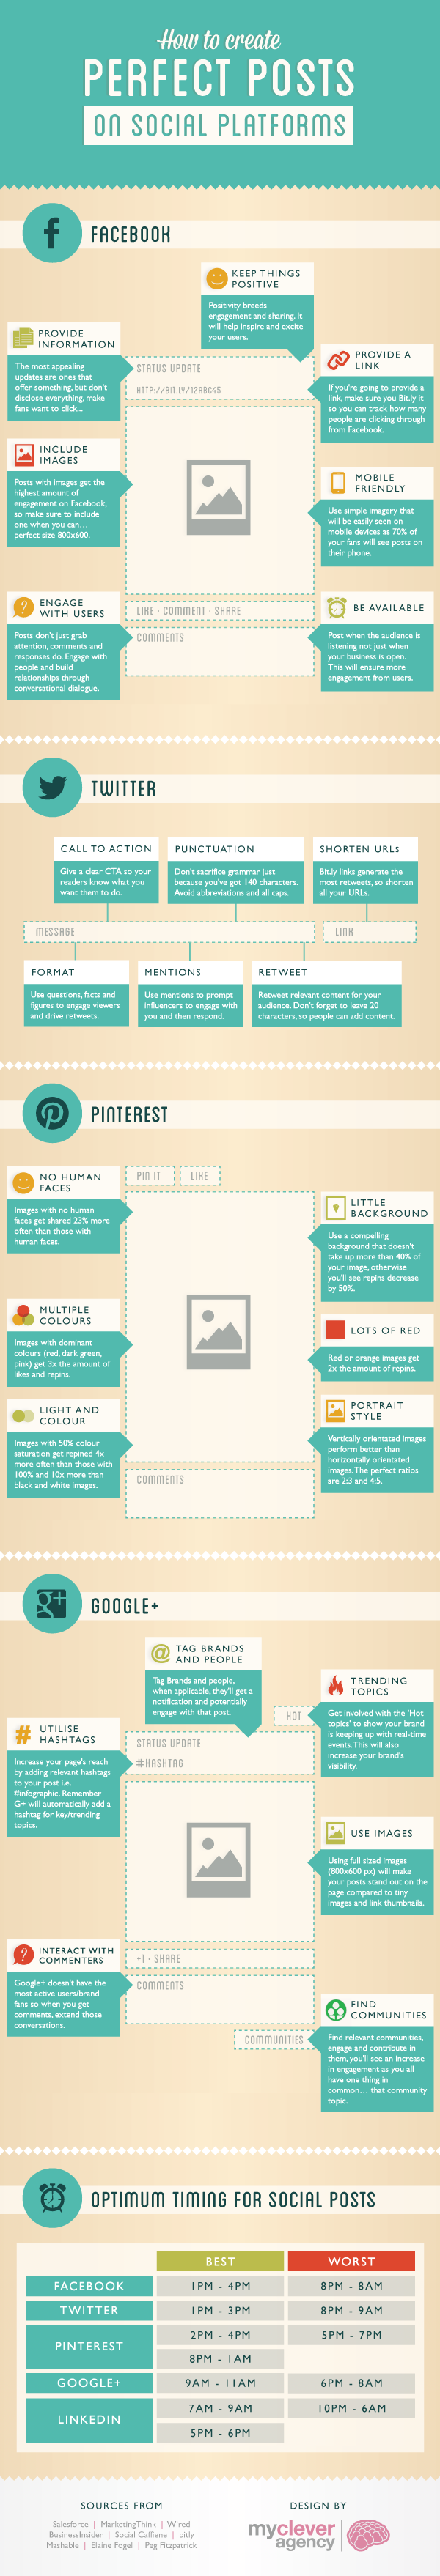 How To Create The Perfect #Pinterest, #Google #Facebook and #Twitter Posts #SMM #Infographic